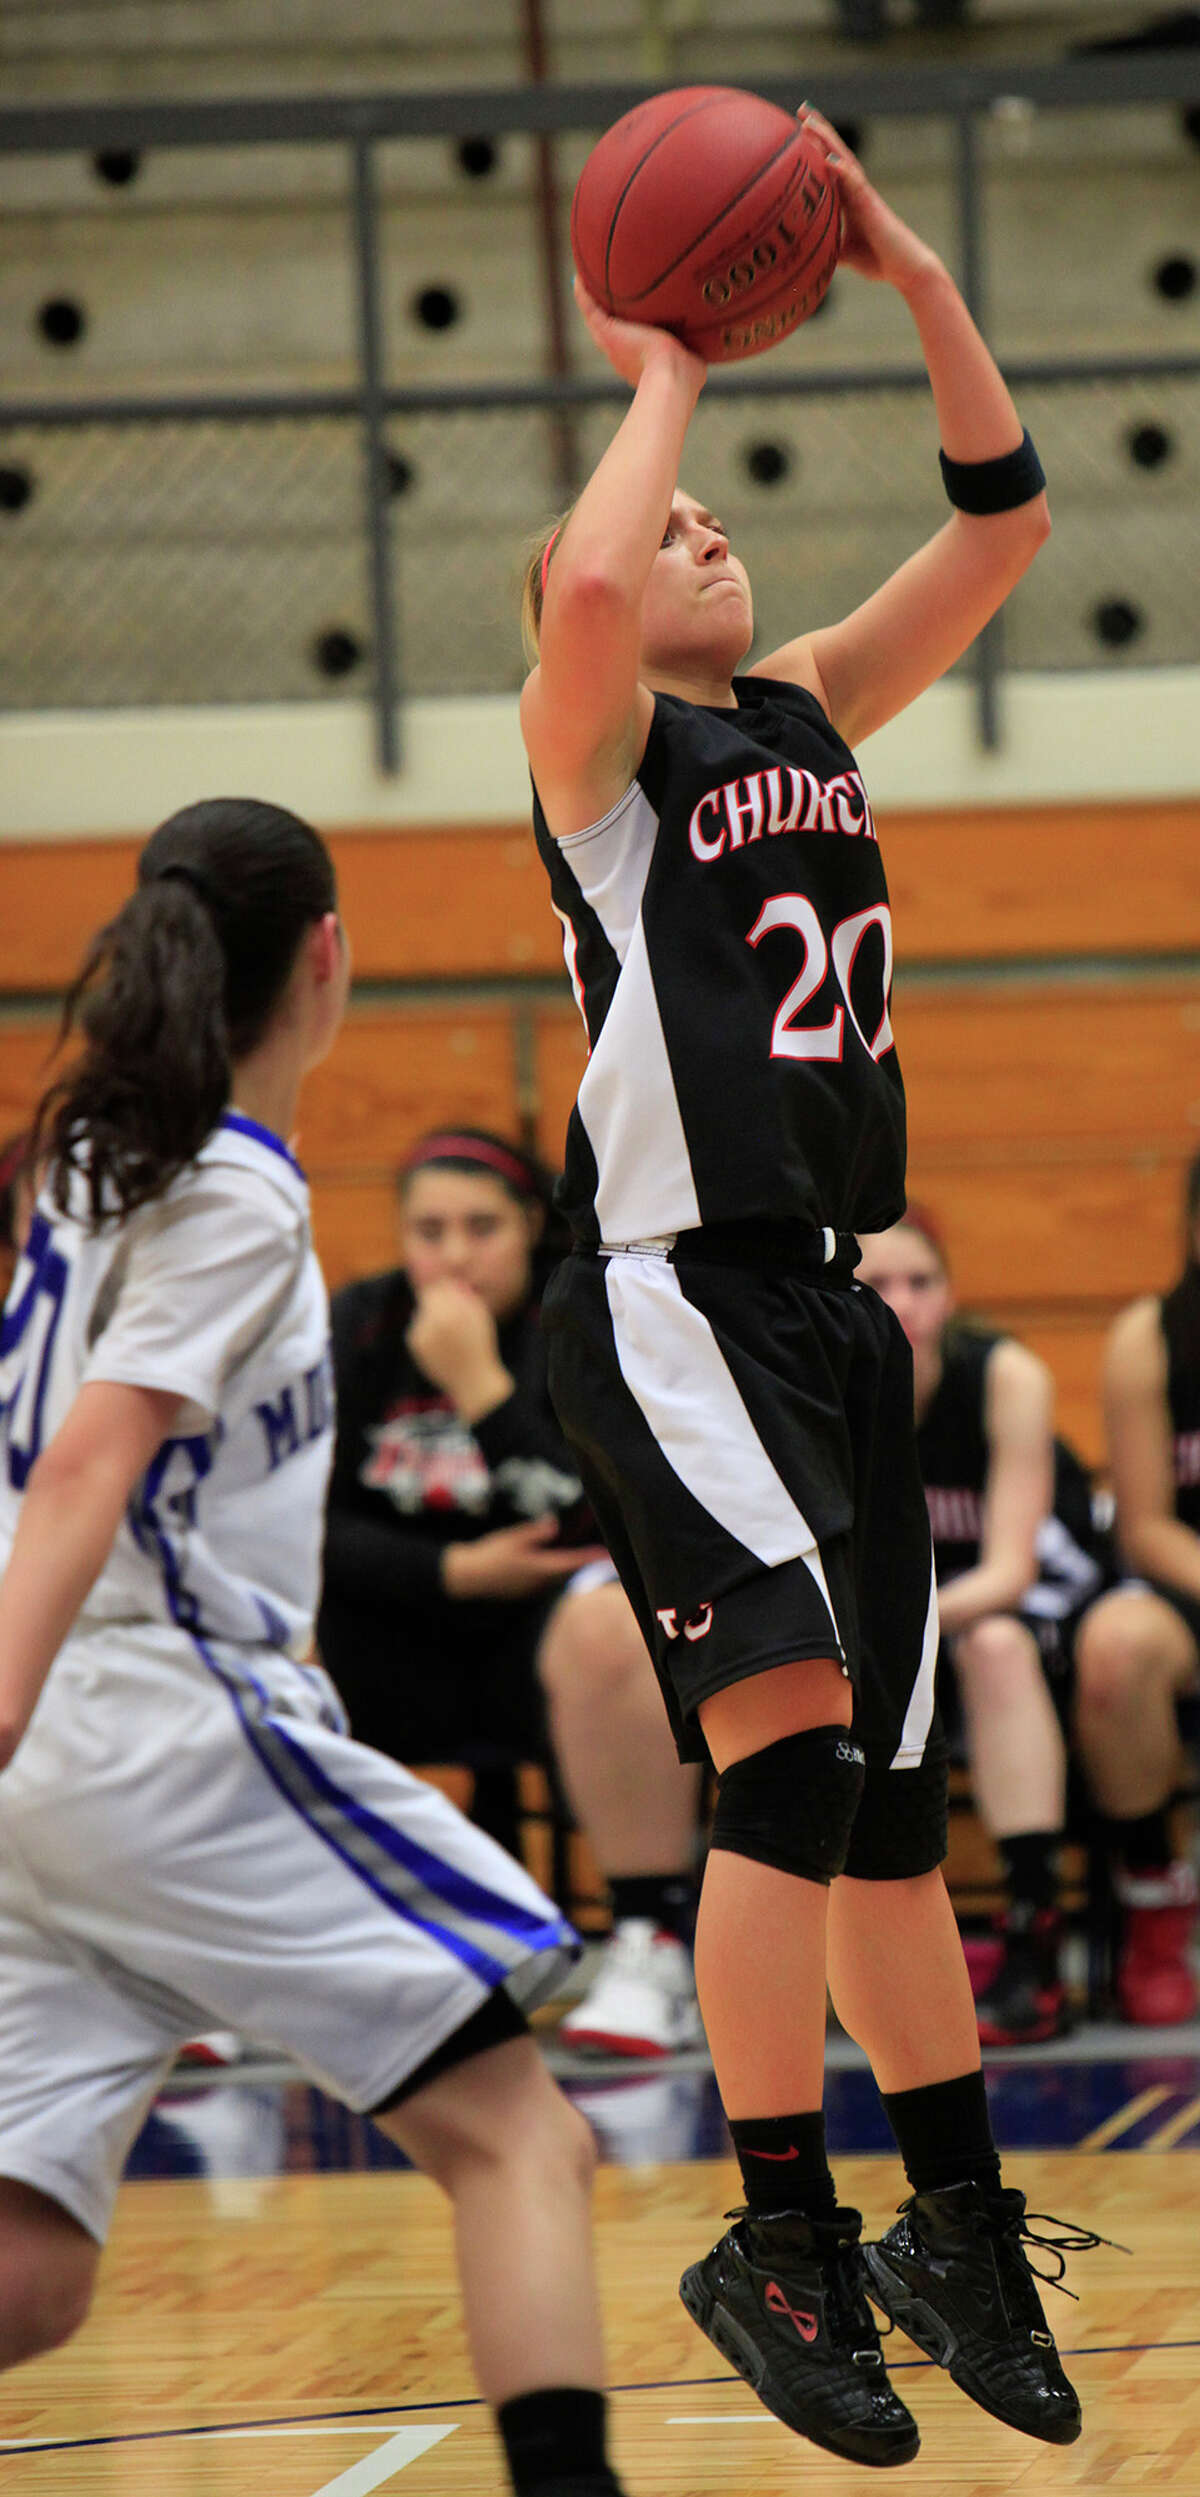 Churchill guard Leslie Vorpahl, 20, puts up a jump shot as the Lady Chargers beat the Jay Lady Mustangs 46-32 in non-district girls basketball, Tuesday, November 19, 2011, at Taylor Field House in San Antonio. Churchill with a 28-24 lead at the half. ( Photo by J. Michael Short / SPECIAL )